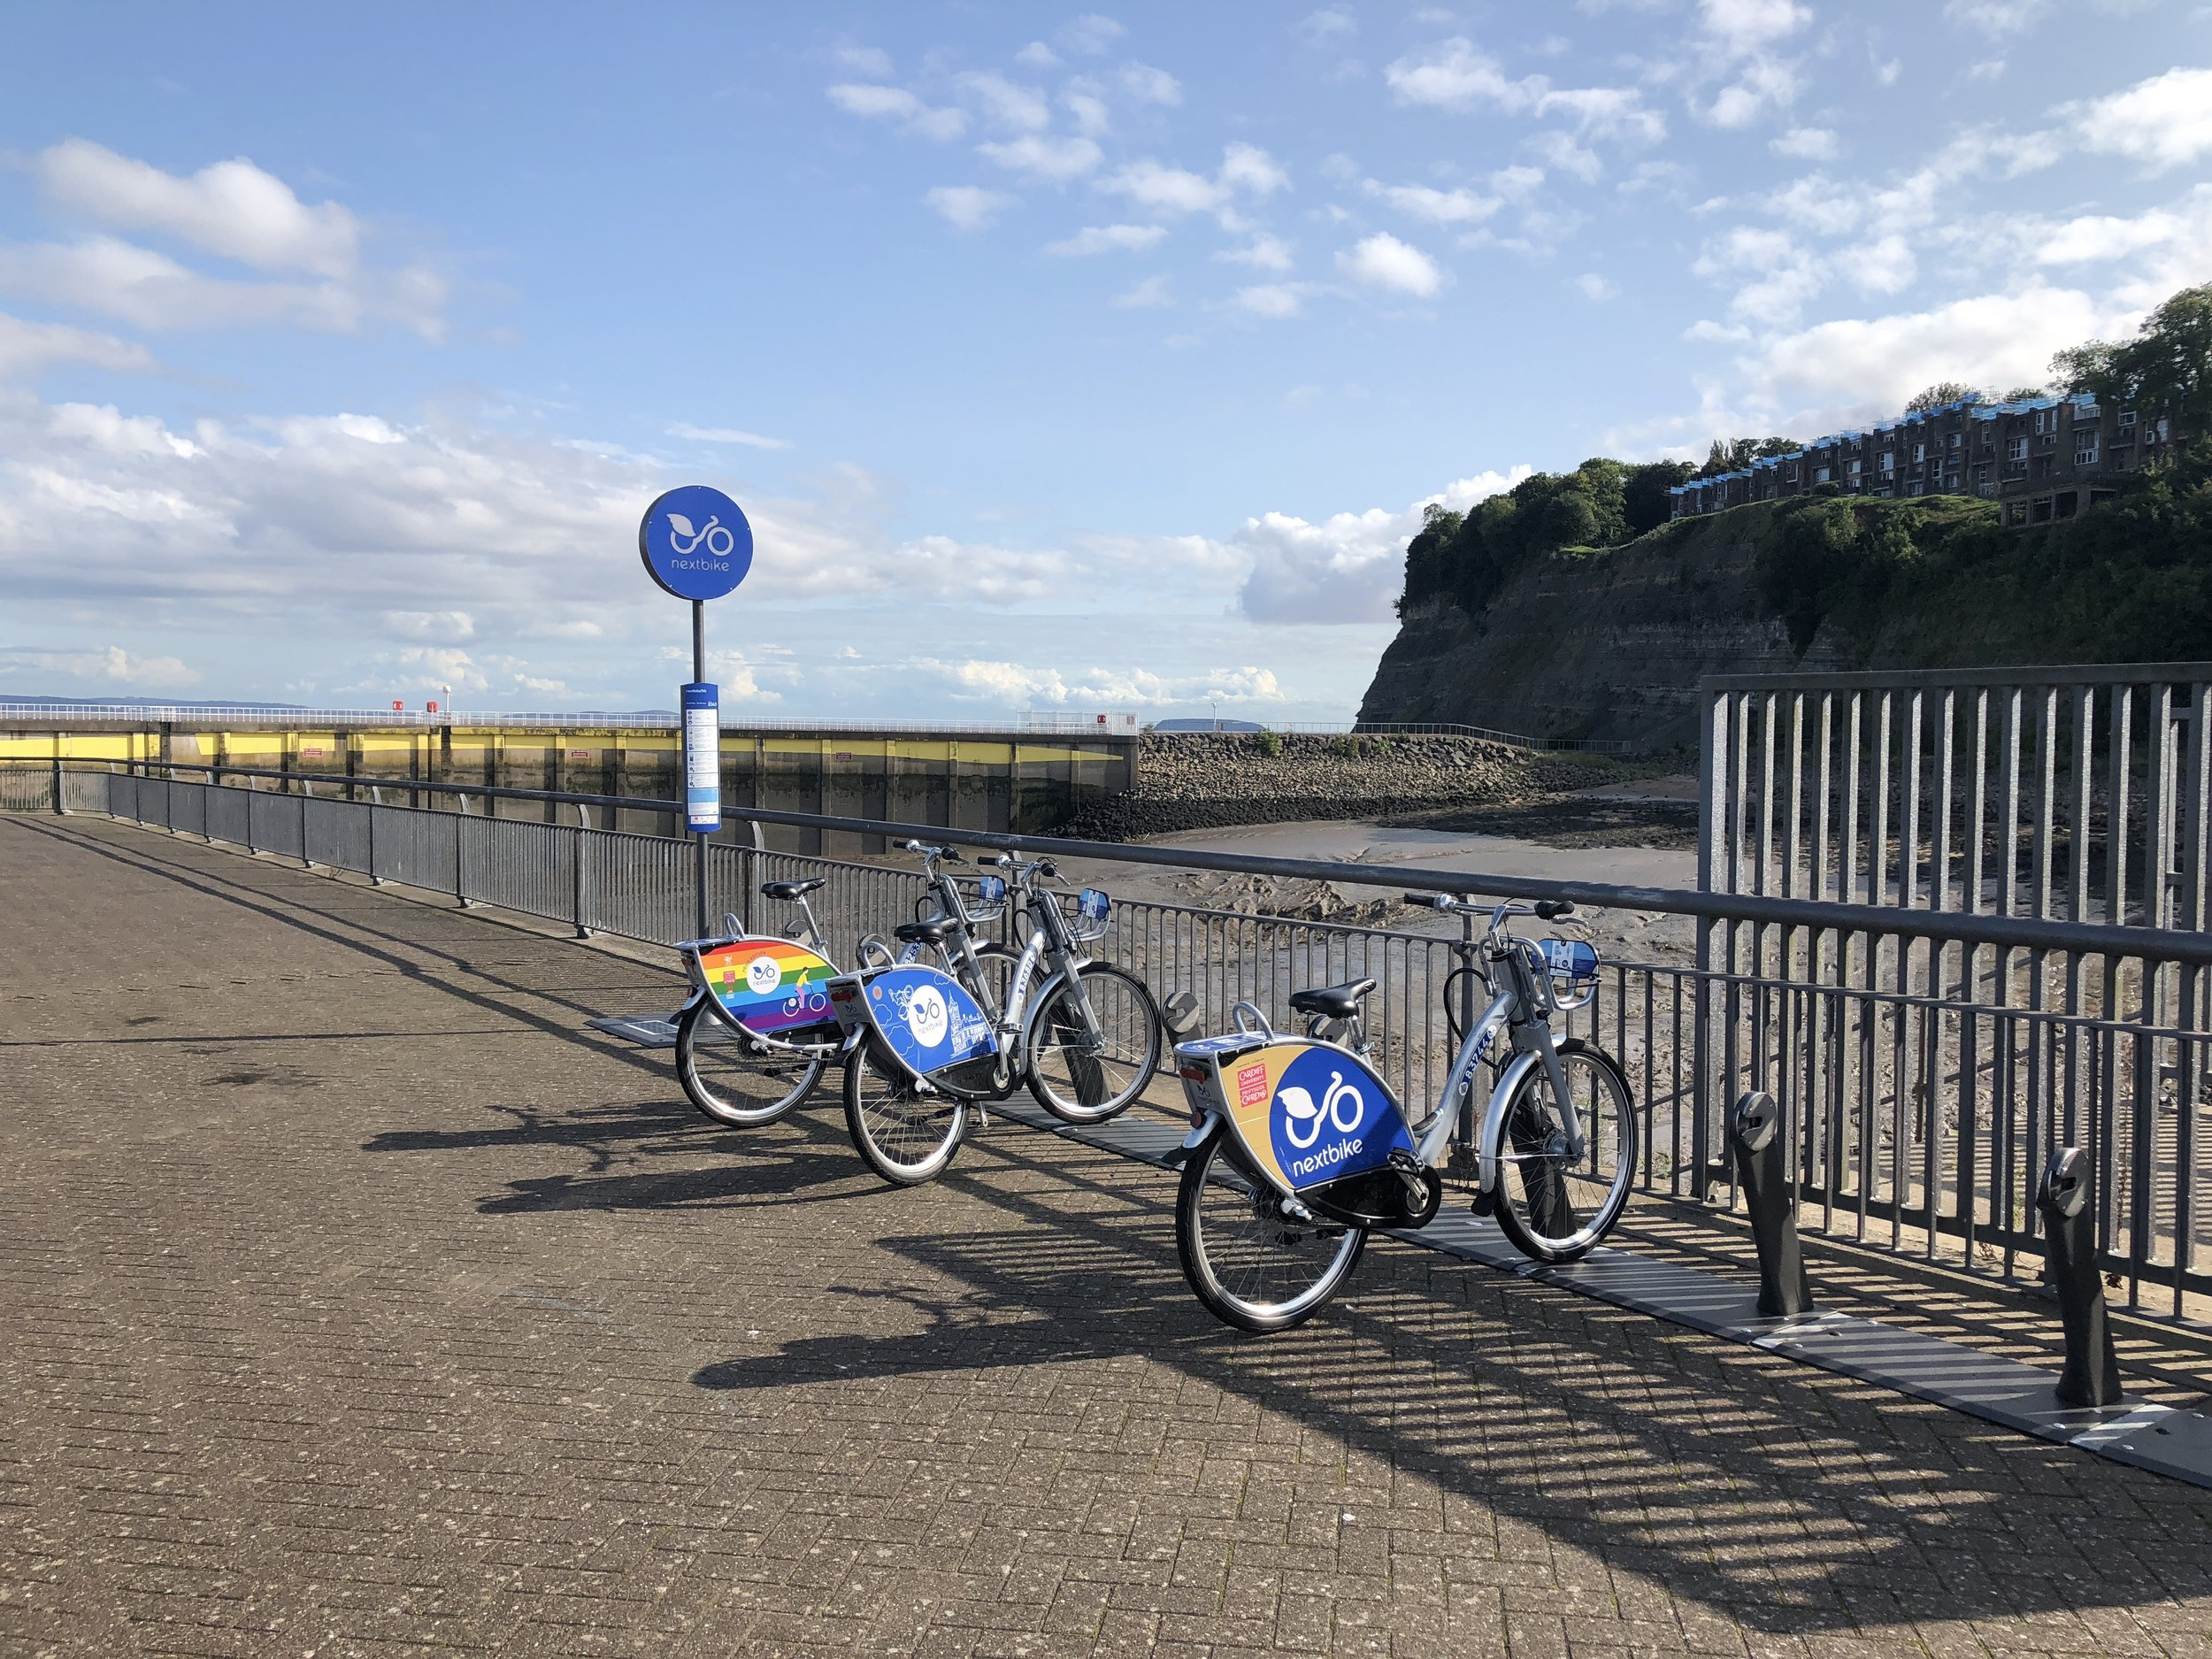 Download report - Cardiff city bike share report 2018